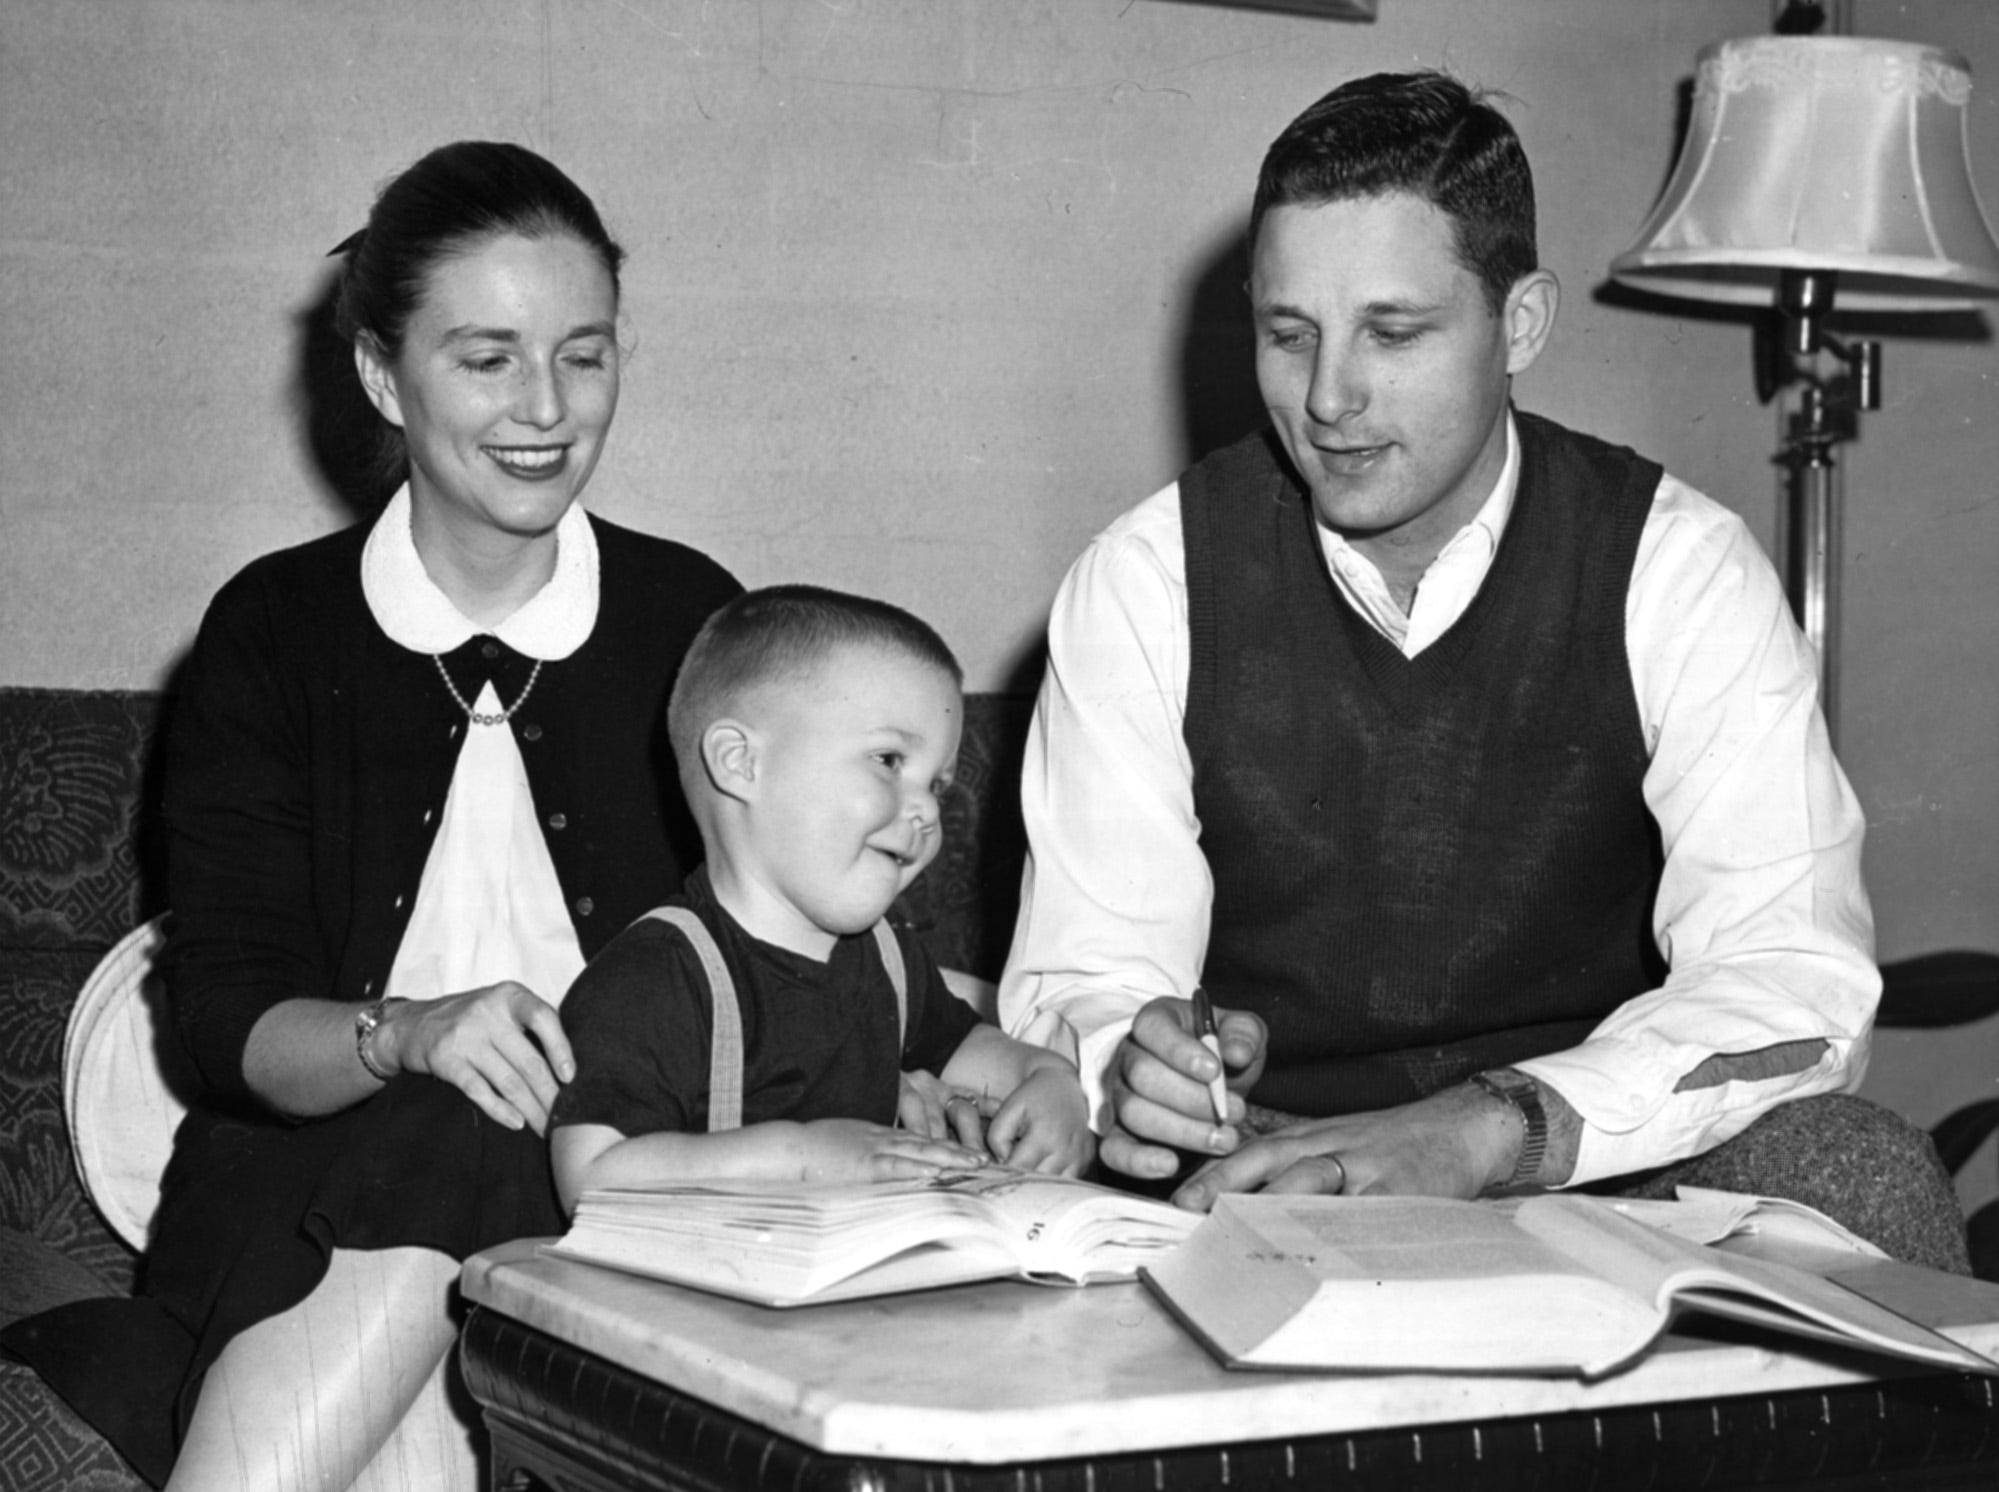 At only two years of age, Evan Bayh, son of Marvella and Birch Bayh, was already attracting attention. In January 1958, the Bayhs had just moved to Bloomington while Birch, a state representative, worked on a law degree at Indiana University.